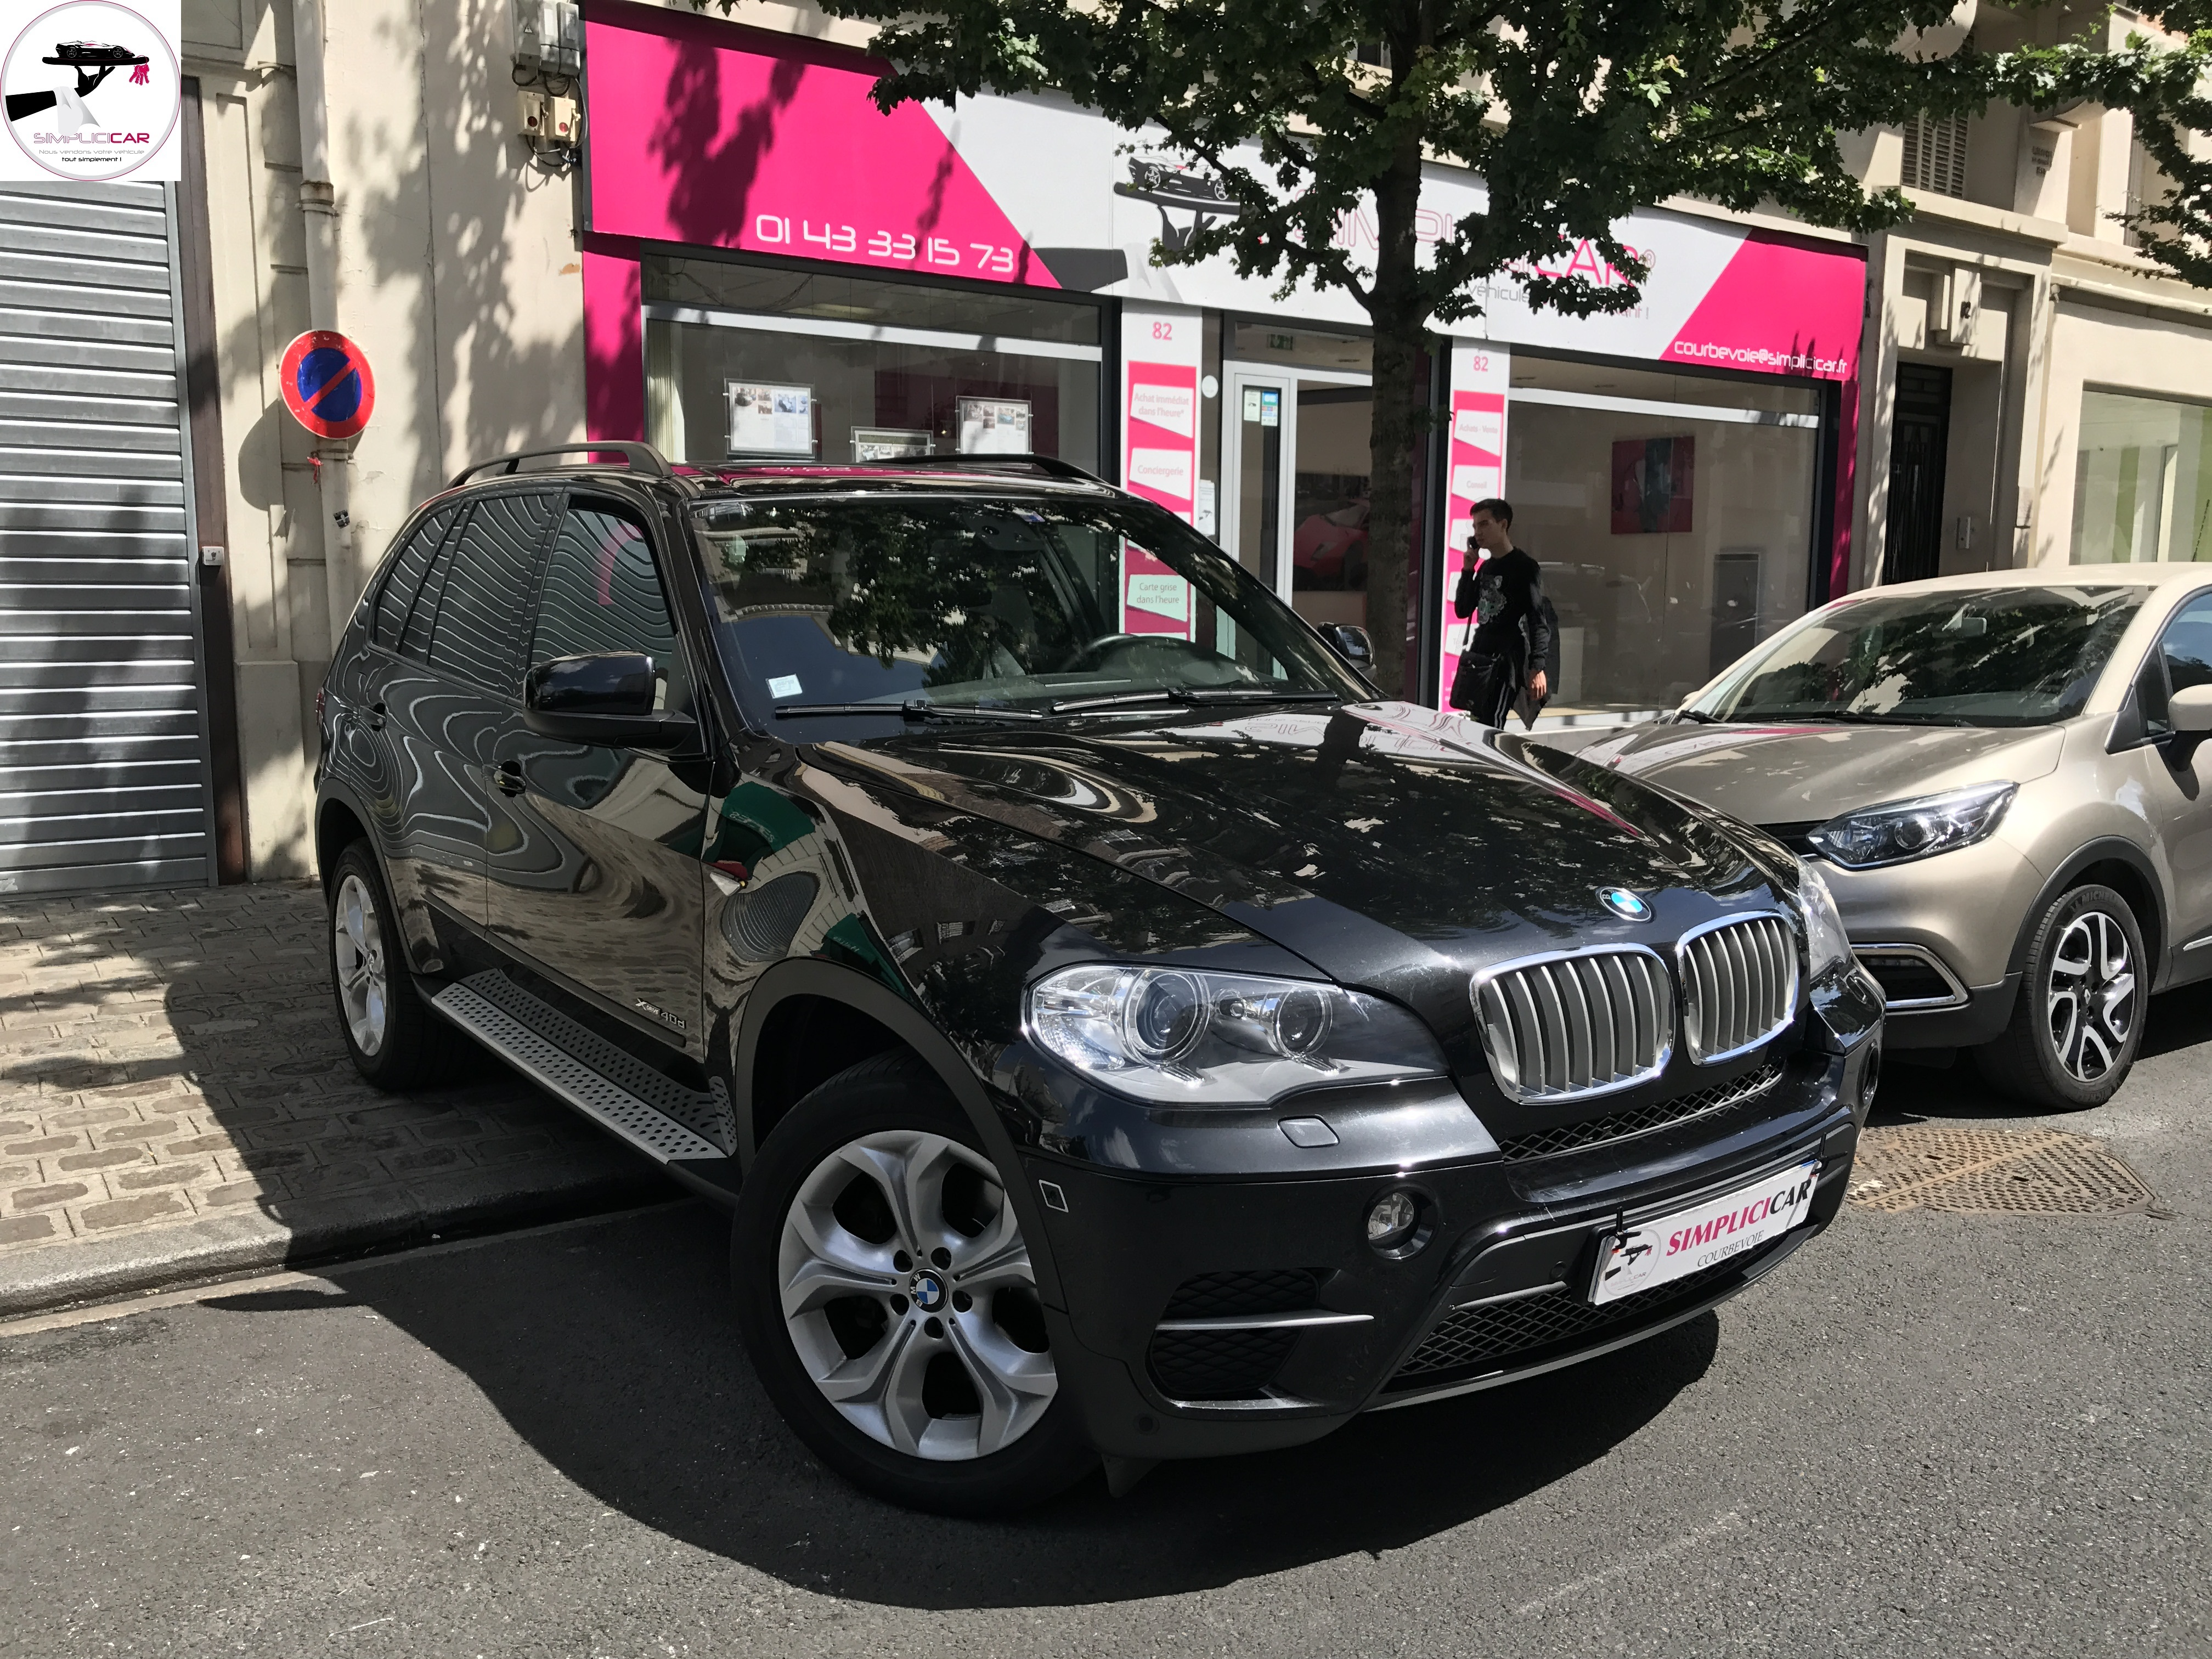 voiture bmw x5 xdrive 40d 306ch n1 sav exclusive a occasion diesel 2011 79000 km 37990. Black Bedroom Furniture Sets. Home Design Ideas